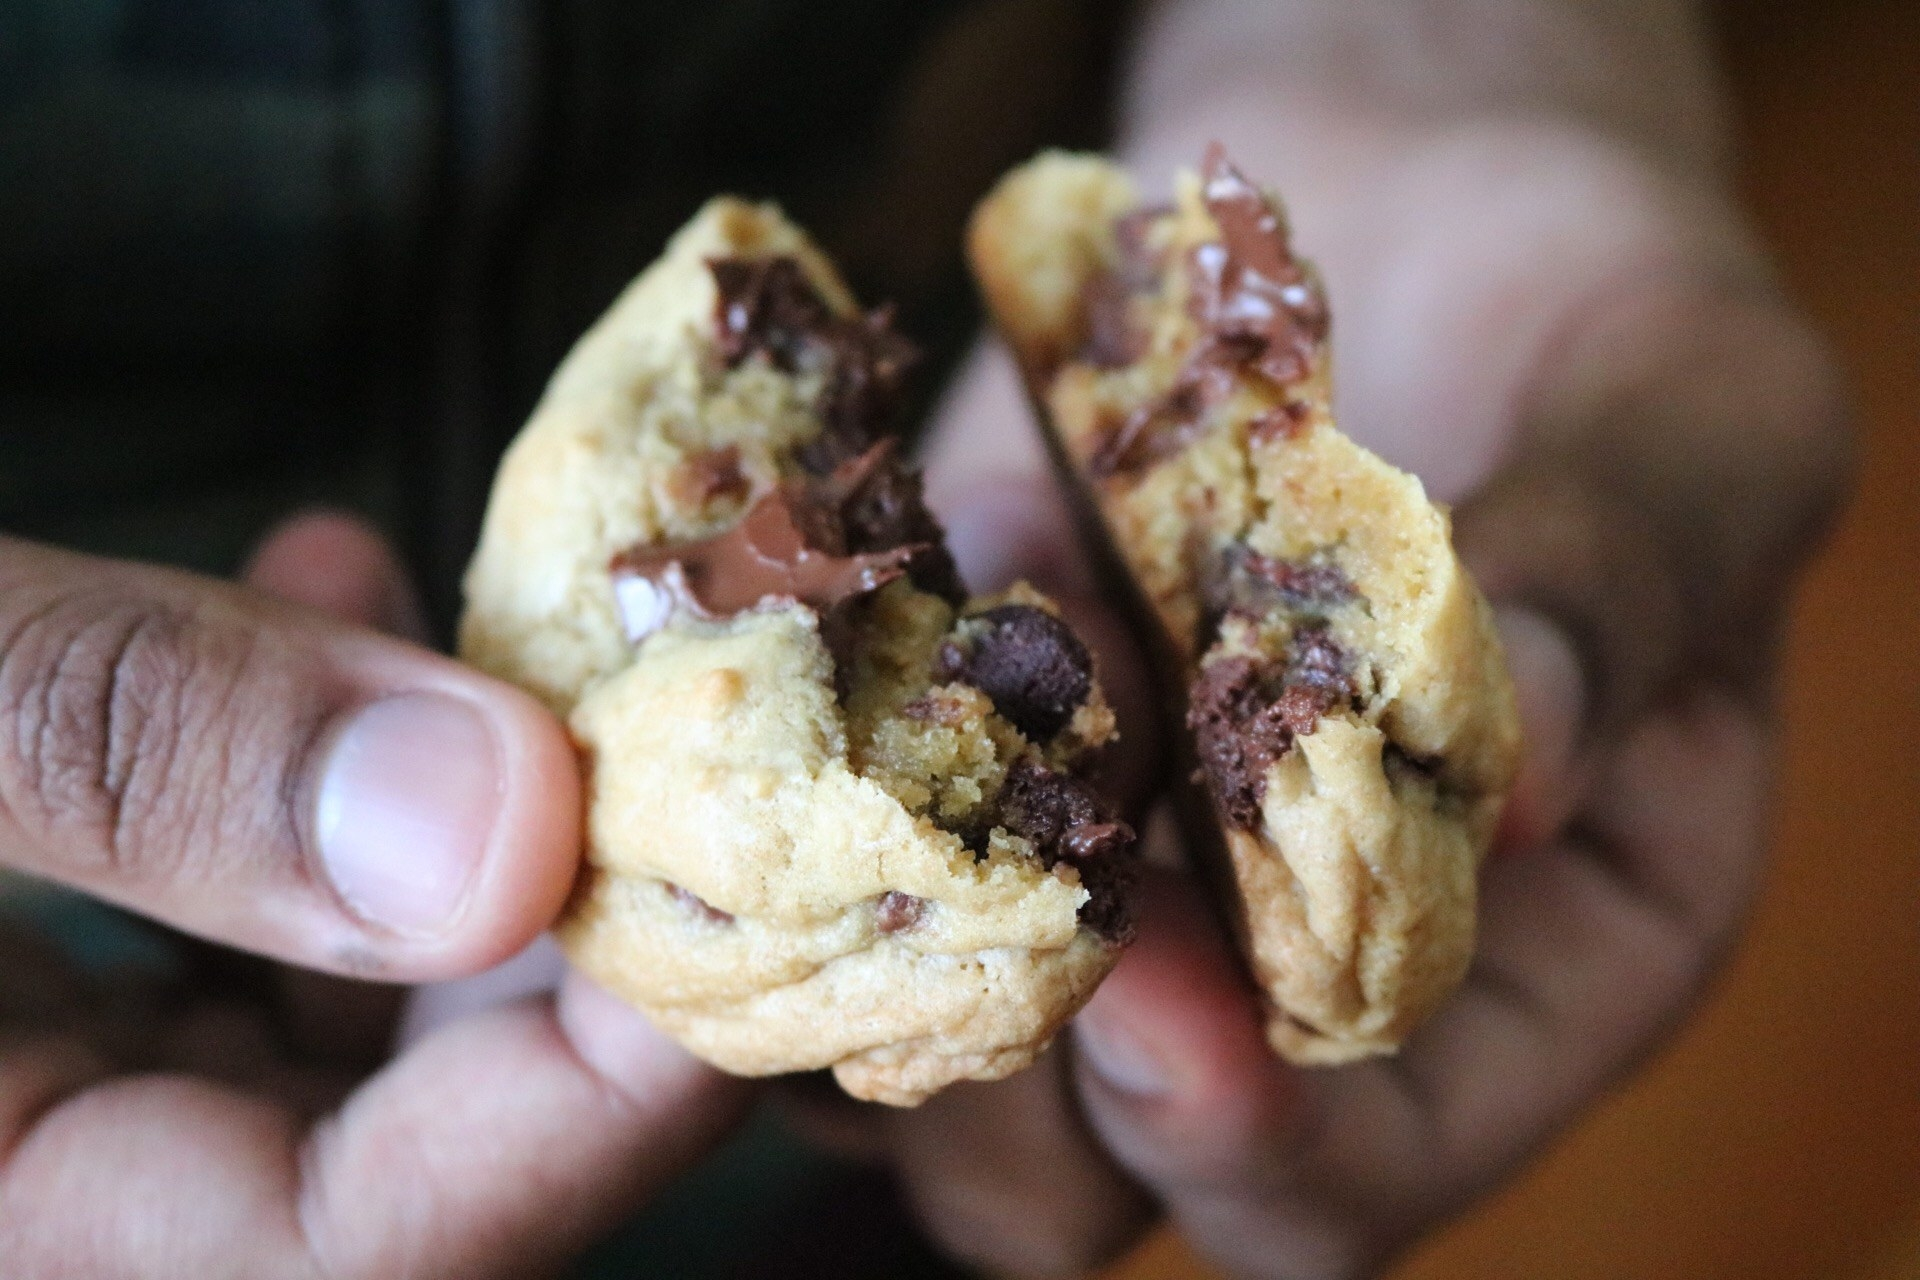 A cookie broken in half with chocolate chips inside and a gooey-looking melted chocolate chunk